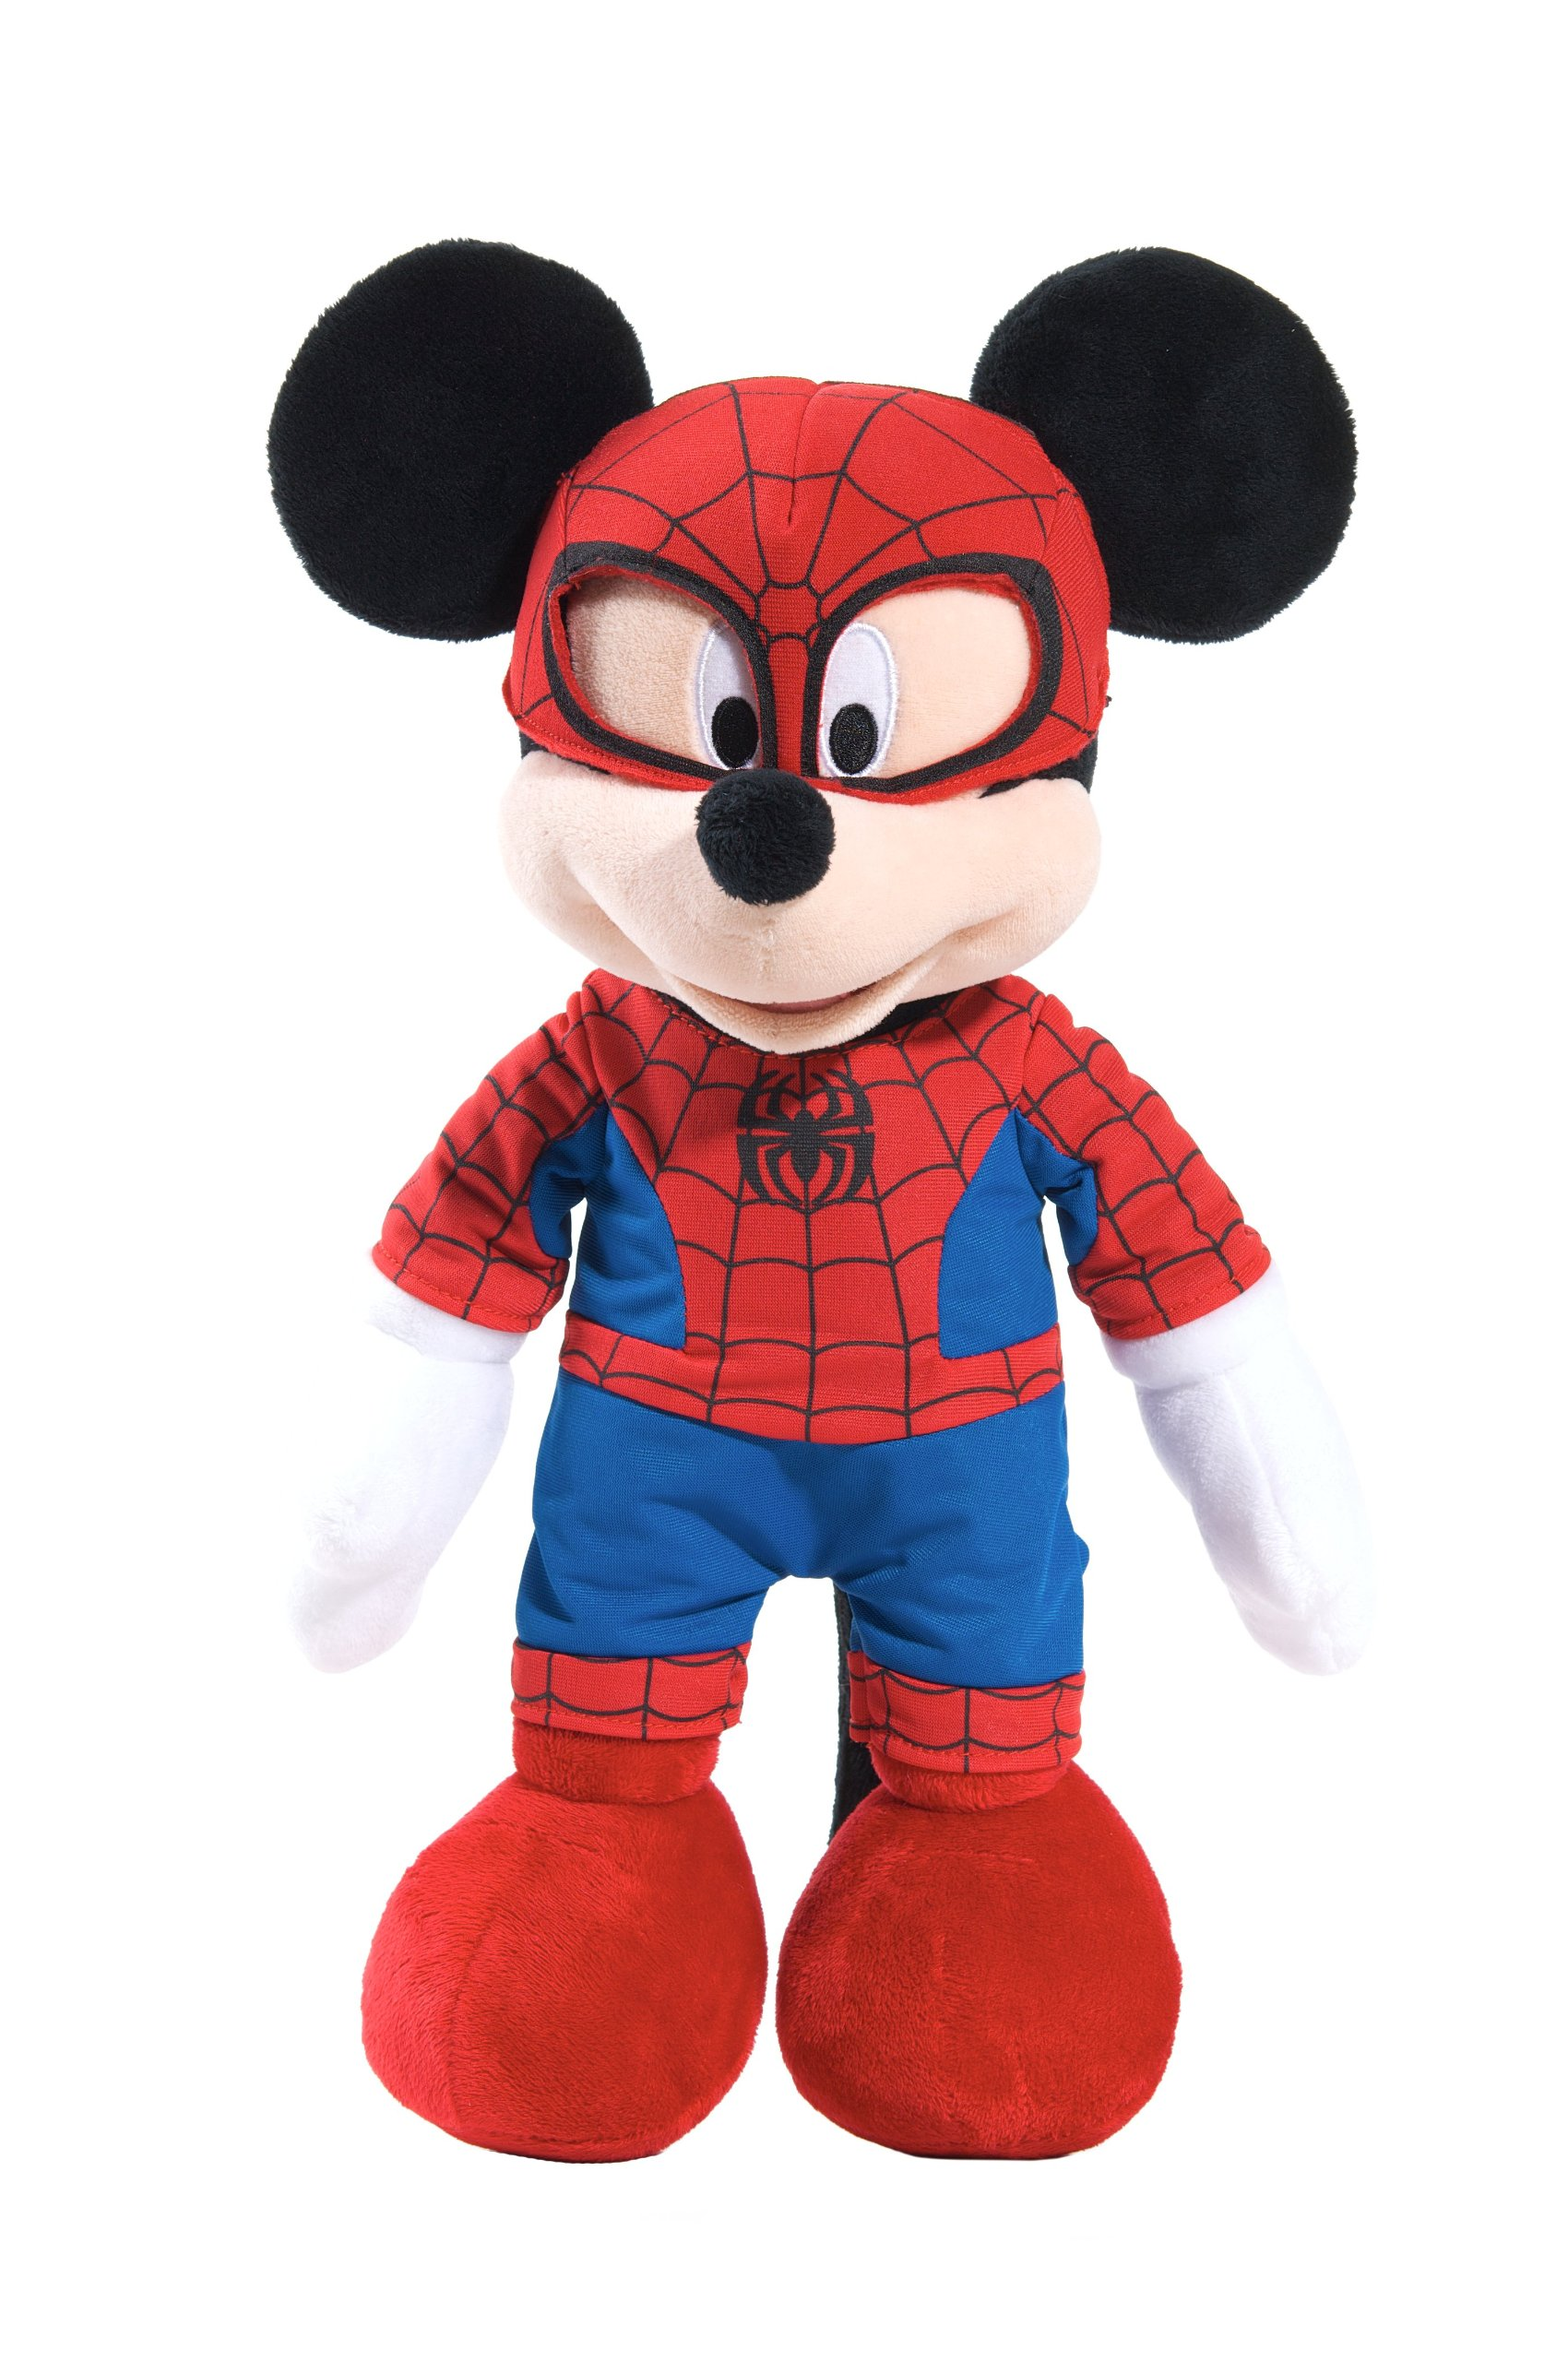 Marvel Disney Themed Mickey as Spiderman Plush by Just Play